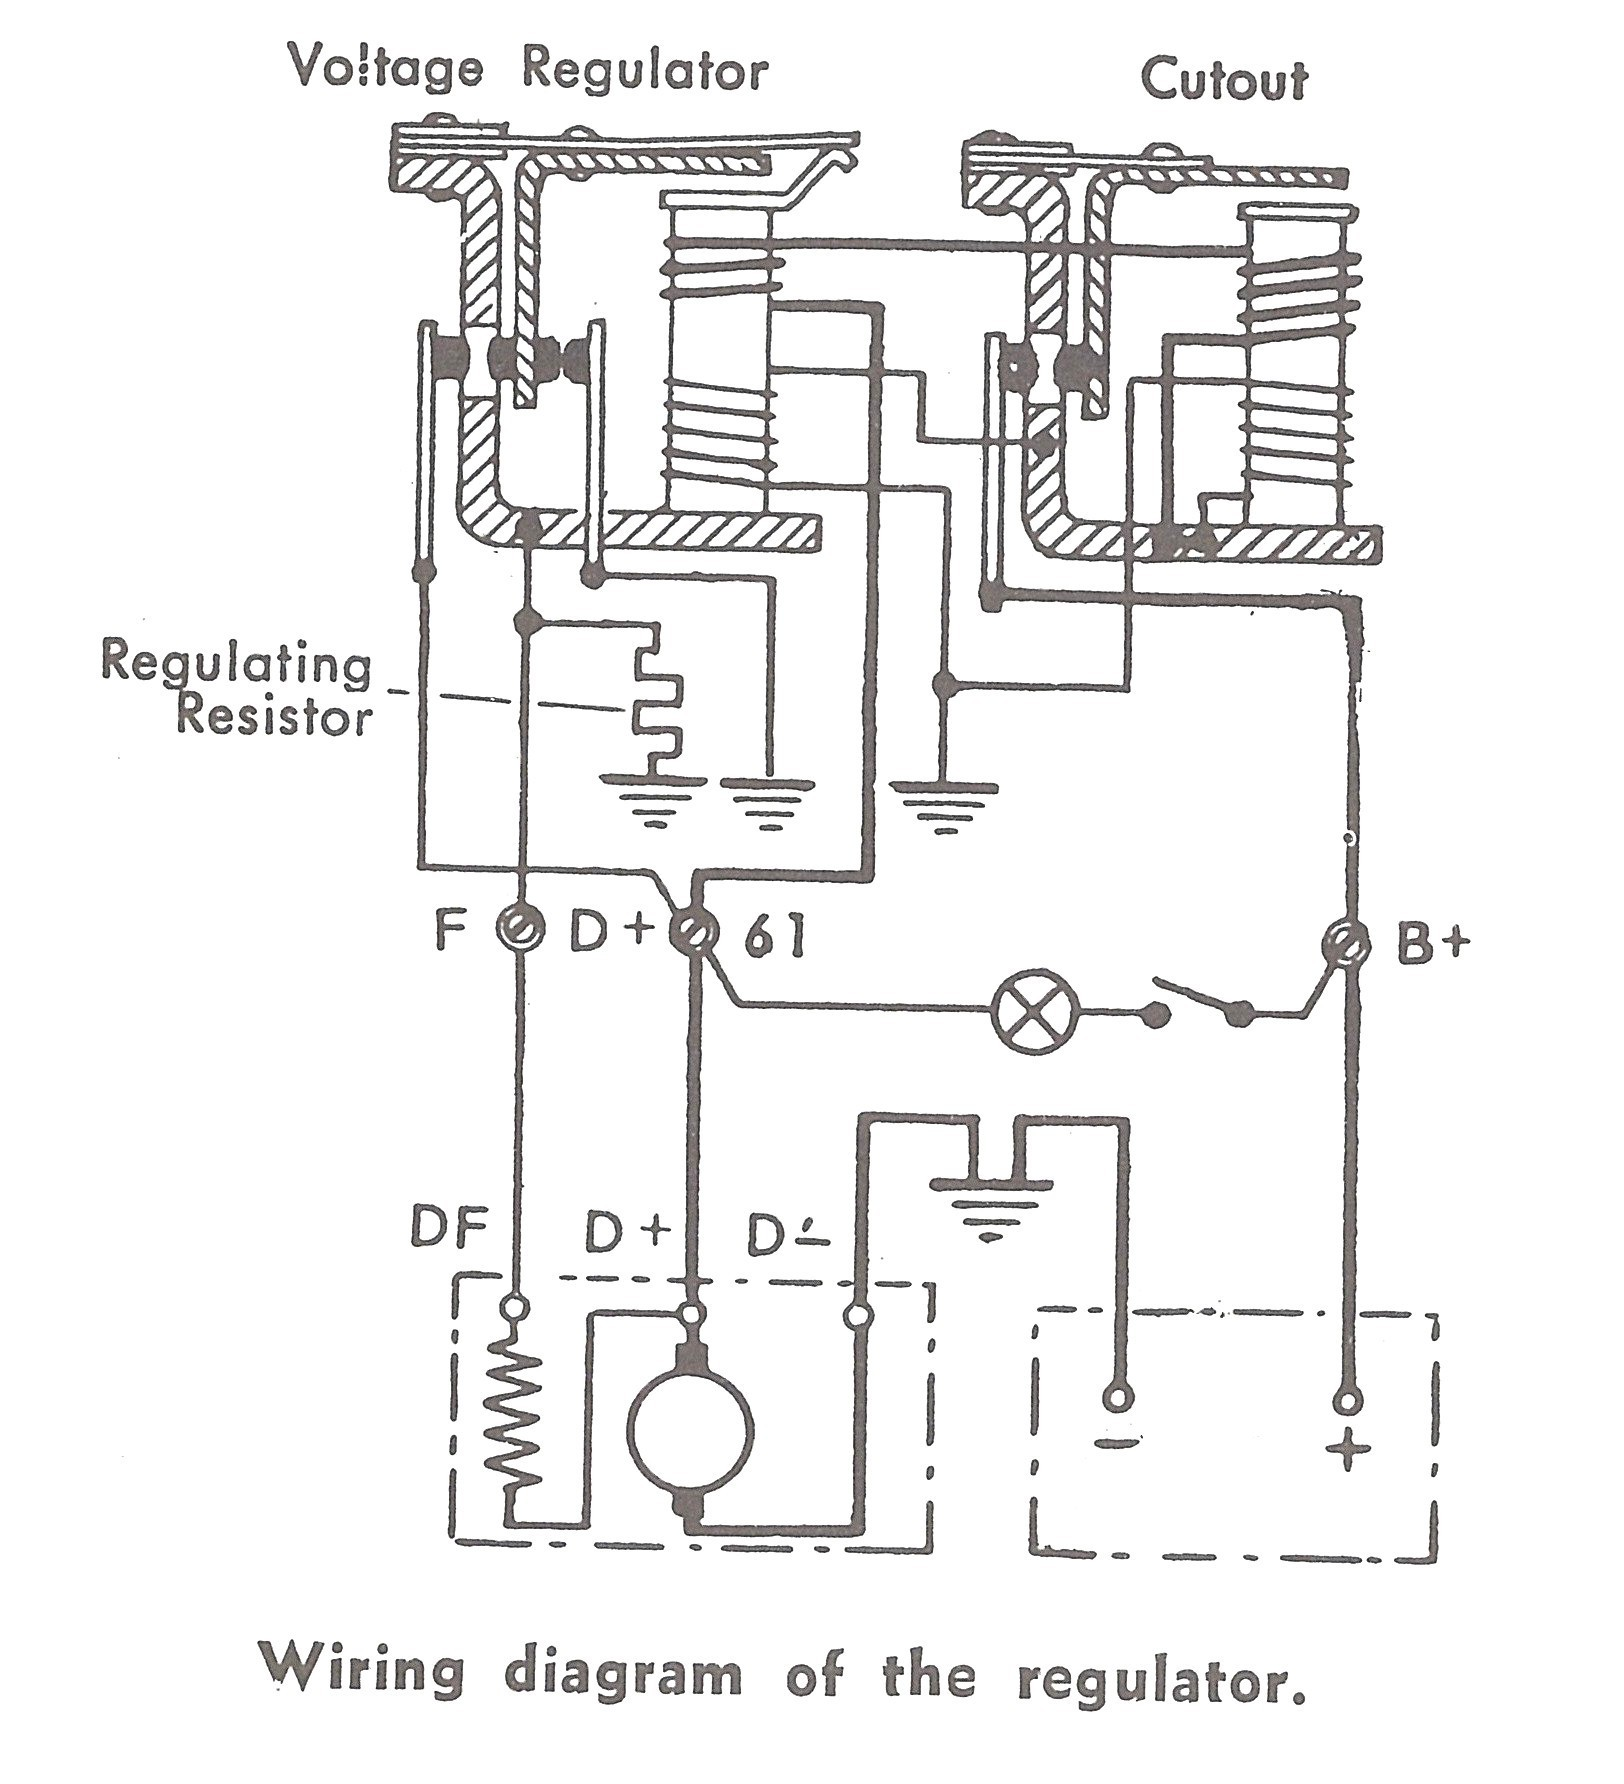 hight resolution of farmall super c 6 volt wiring diagram wiring diagrams schematics 1955 international pickup wiring diagram farmall